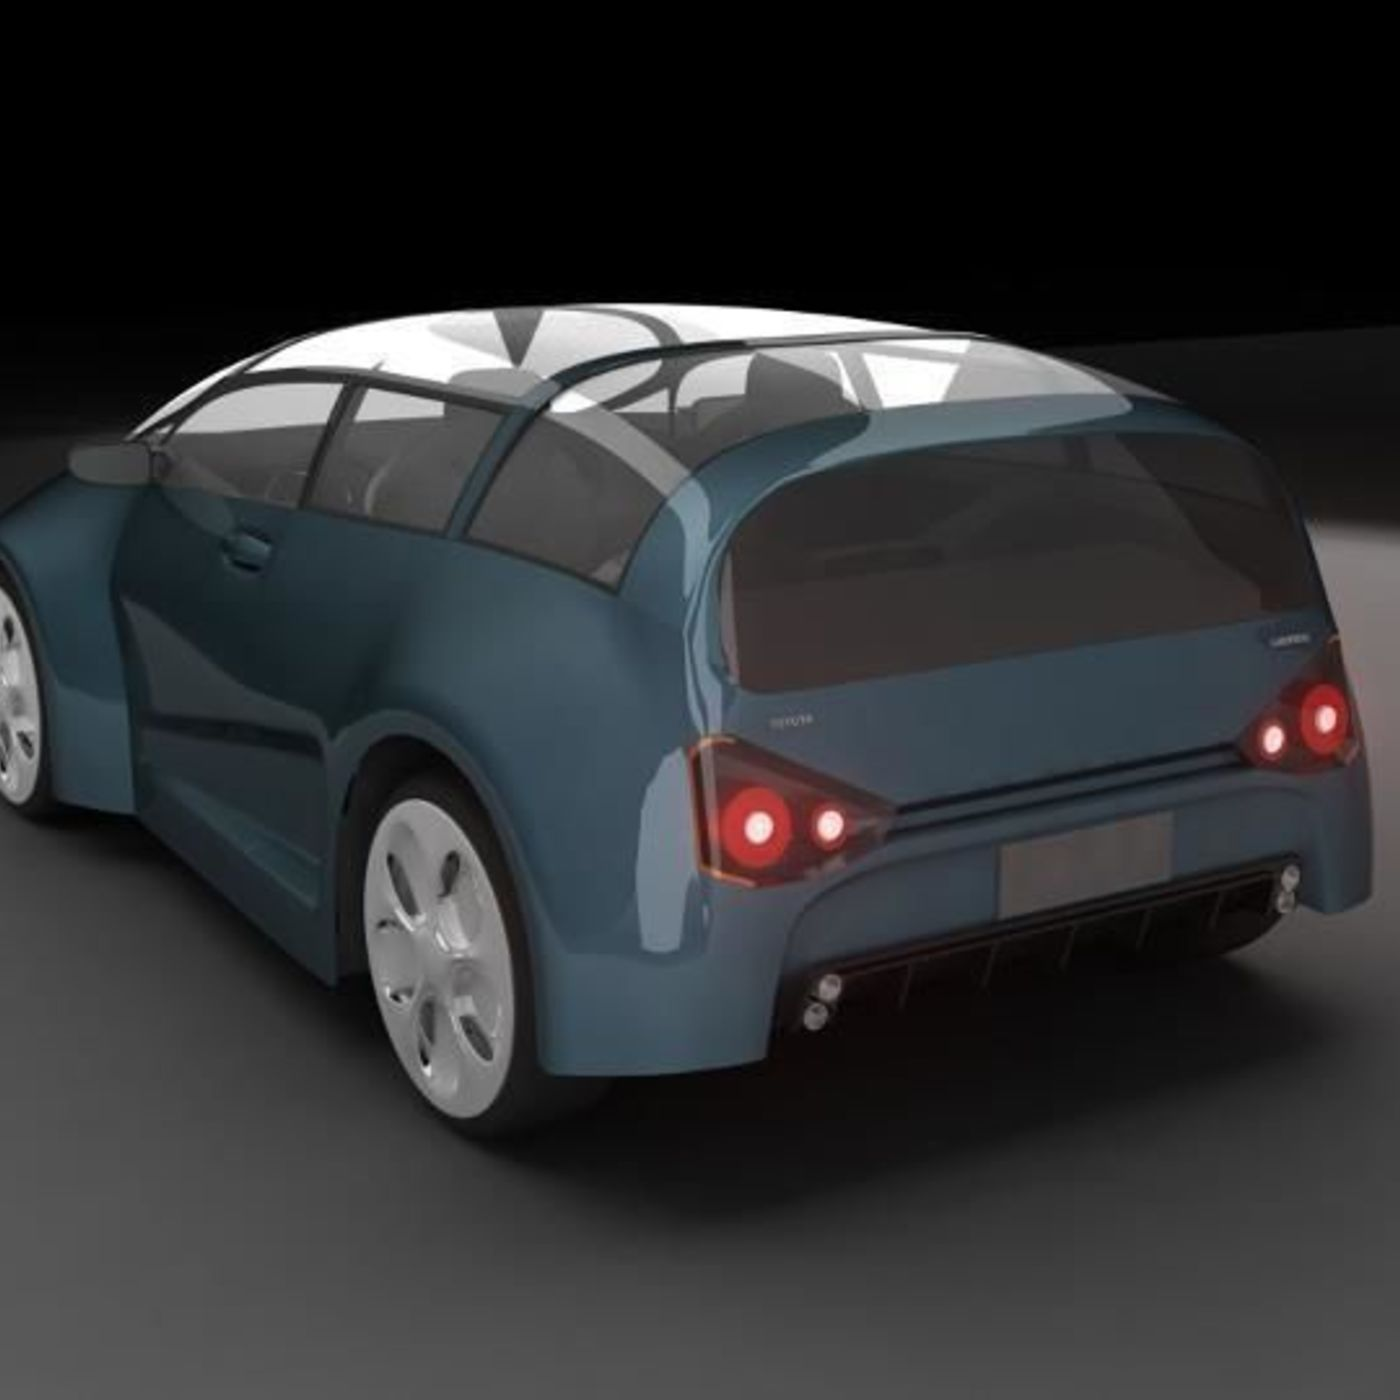 Soon to be 3D printable Cars and car body shells for RC vehicles